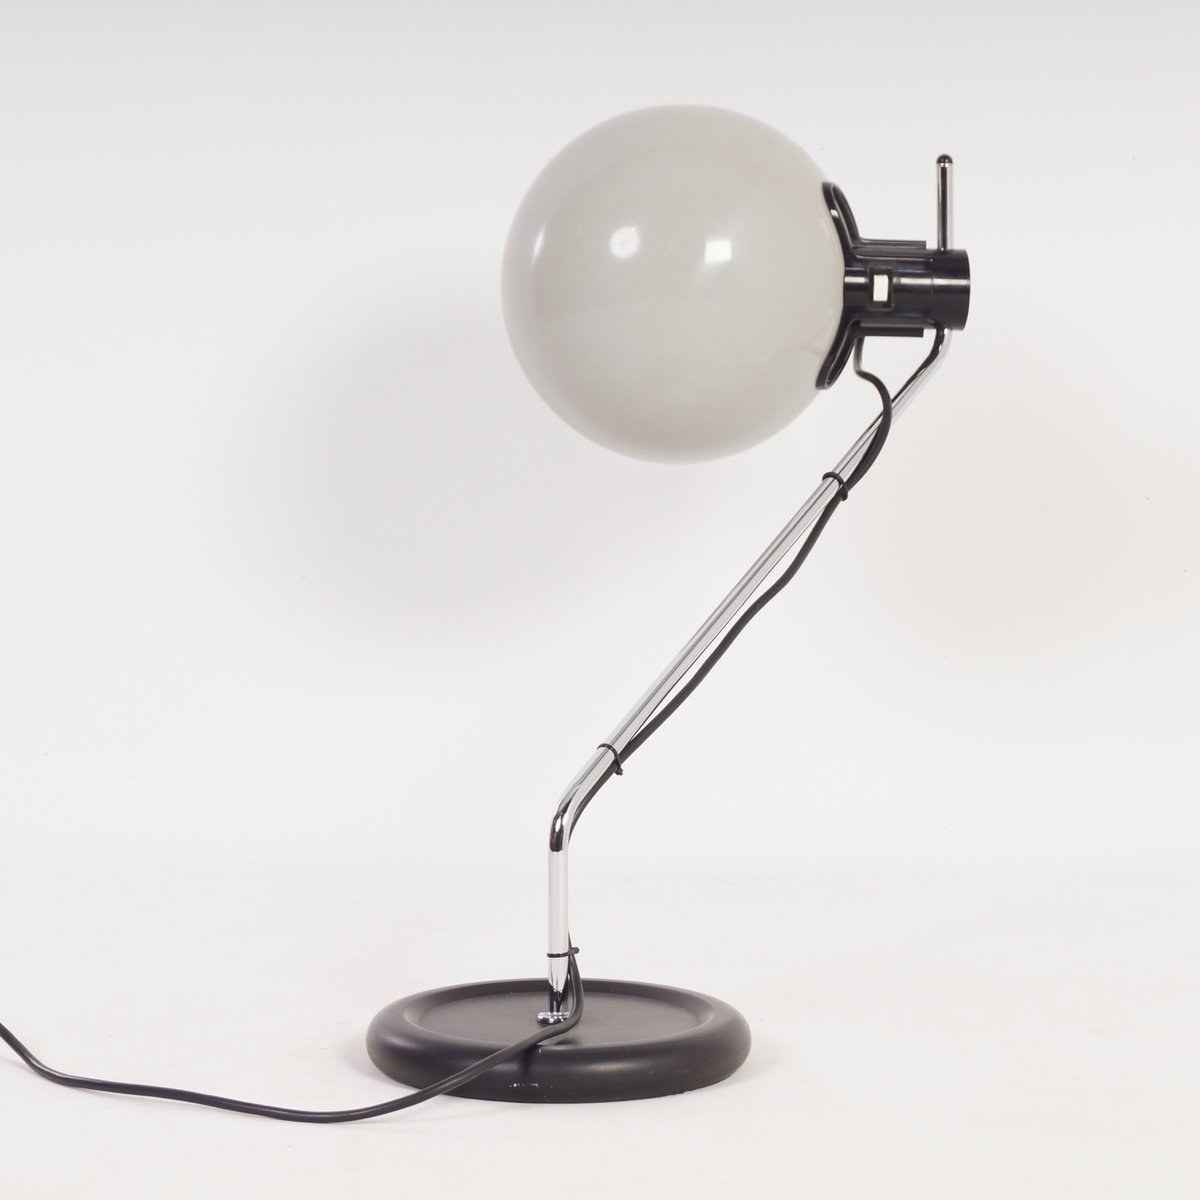 Vintage White Desk Lamp From Guzzini 1980s For Sale At Pamono